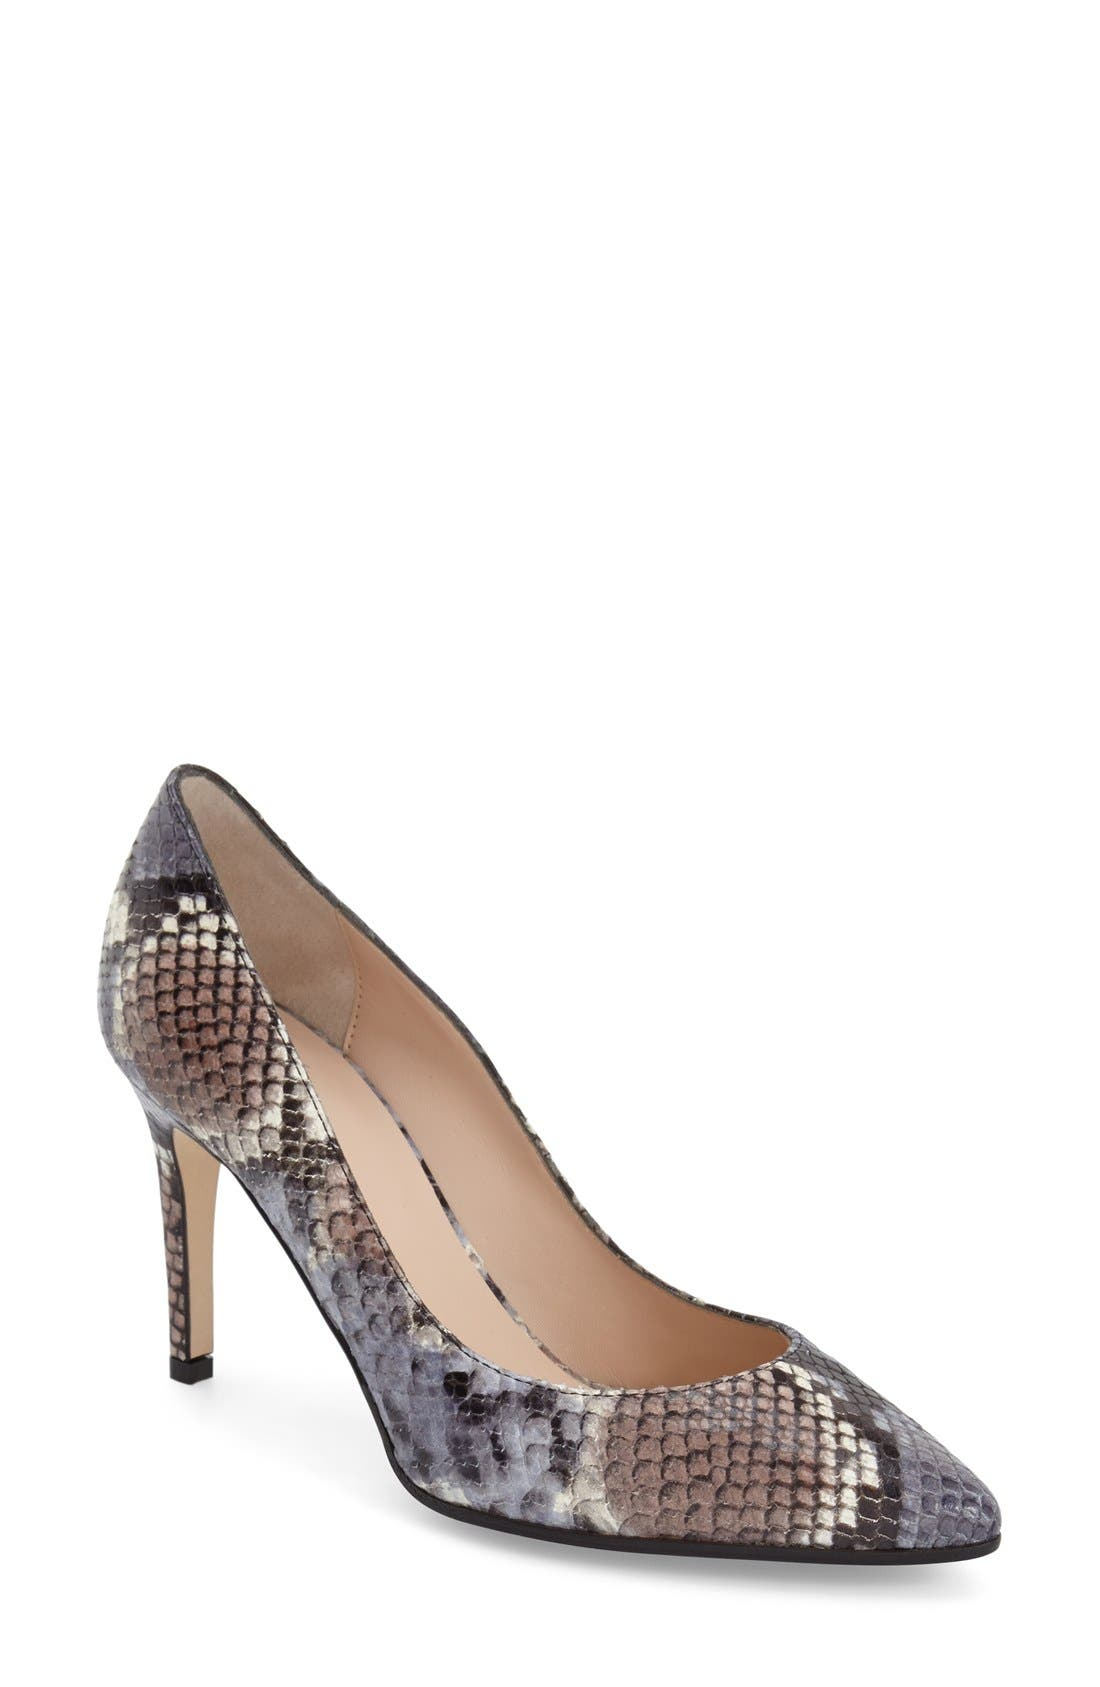 Alternate Image 1 Selected - Aquatalia 'Harlee' Weatherproof Pointy Toe Pump (Women)